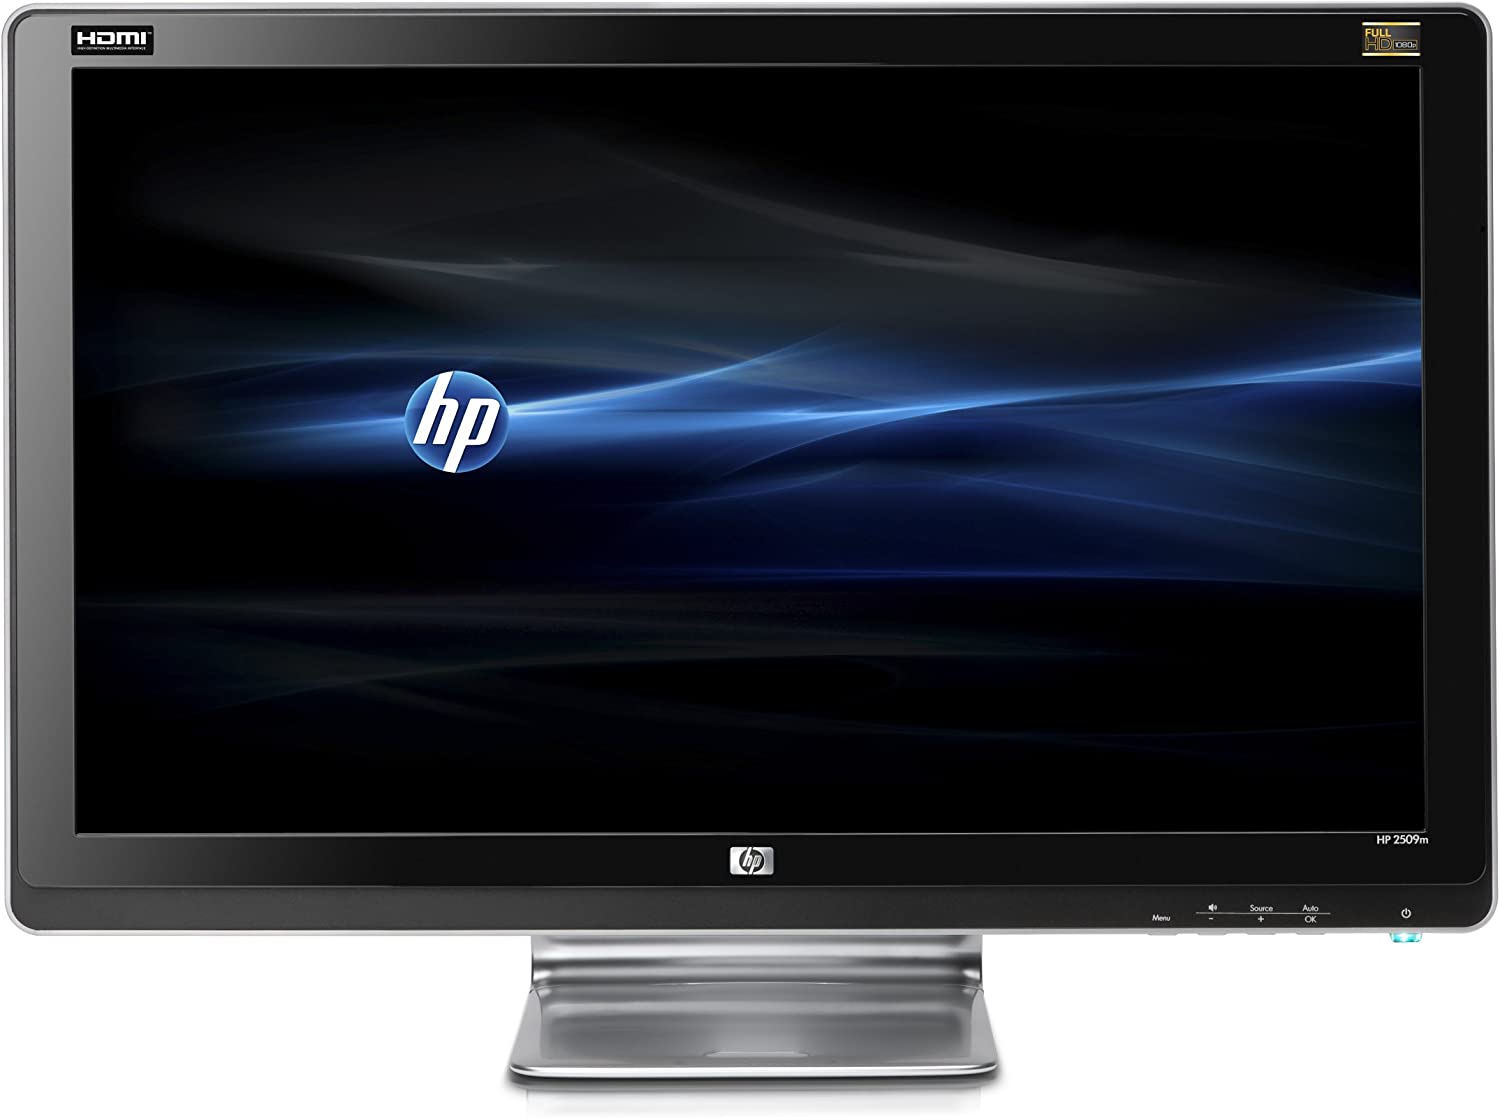 HP 2509m 25-Inch Diagonal Full HD LCD Monitor (Black)